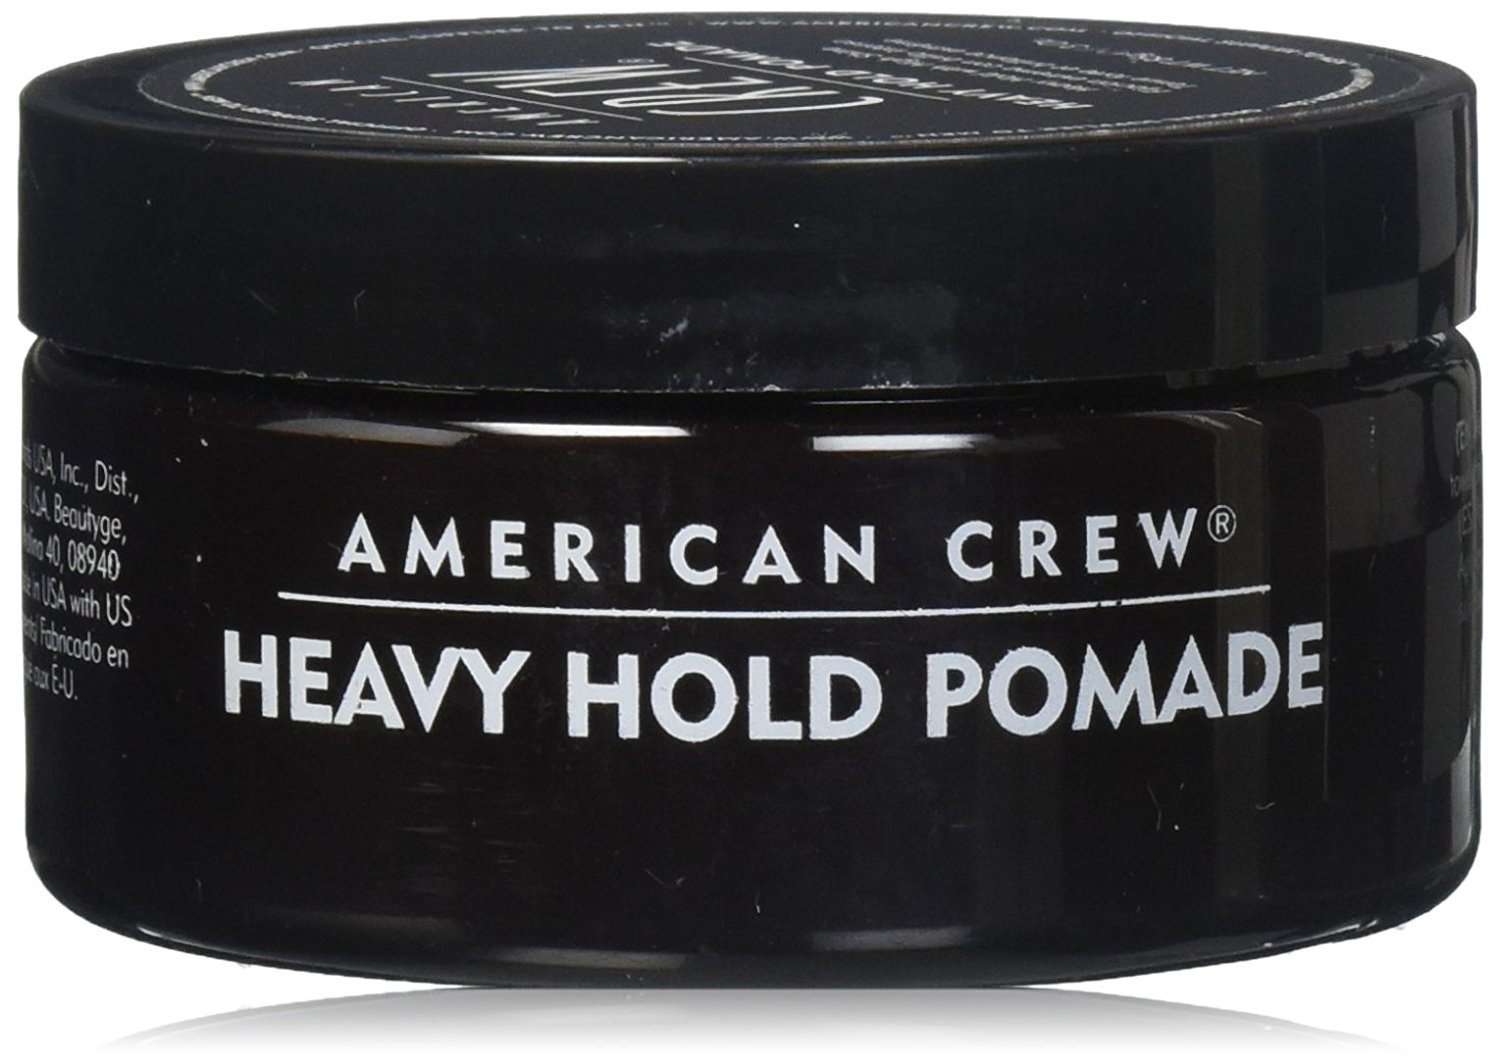 American Crew Heavy Hold Pomade, 3 Ounce (Pack of 12)